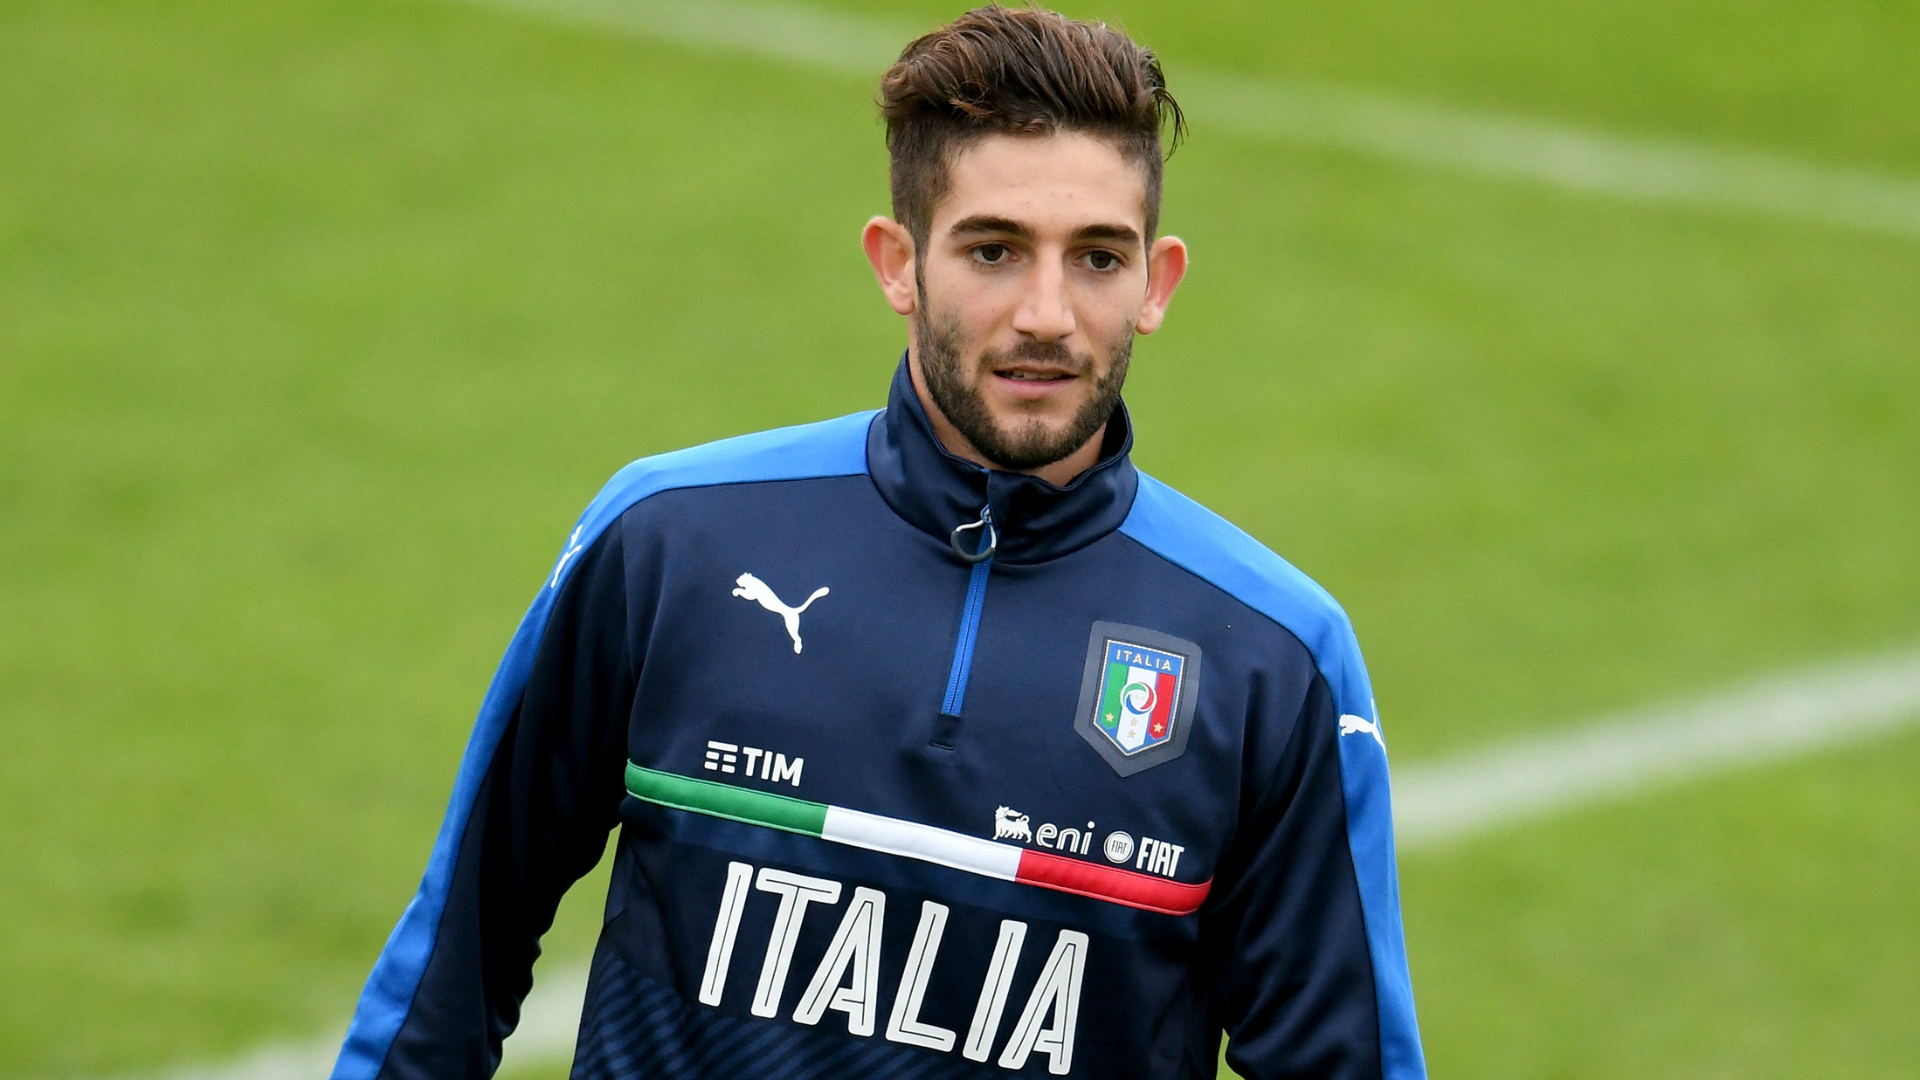 Roberto Gagliardini earned a  million dollar salary - leaving the net worth at 7 million in 2018